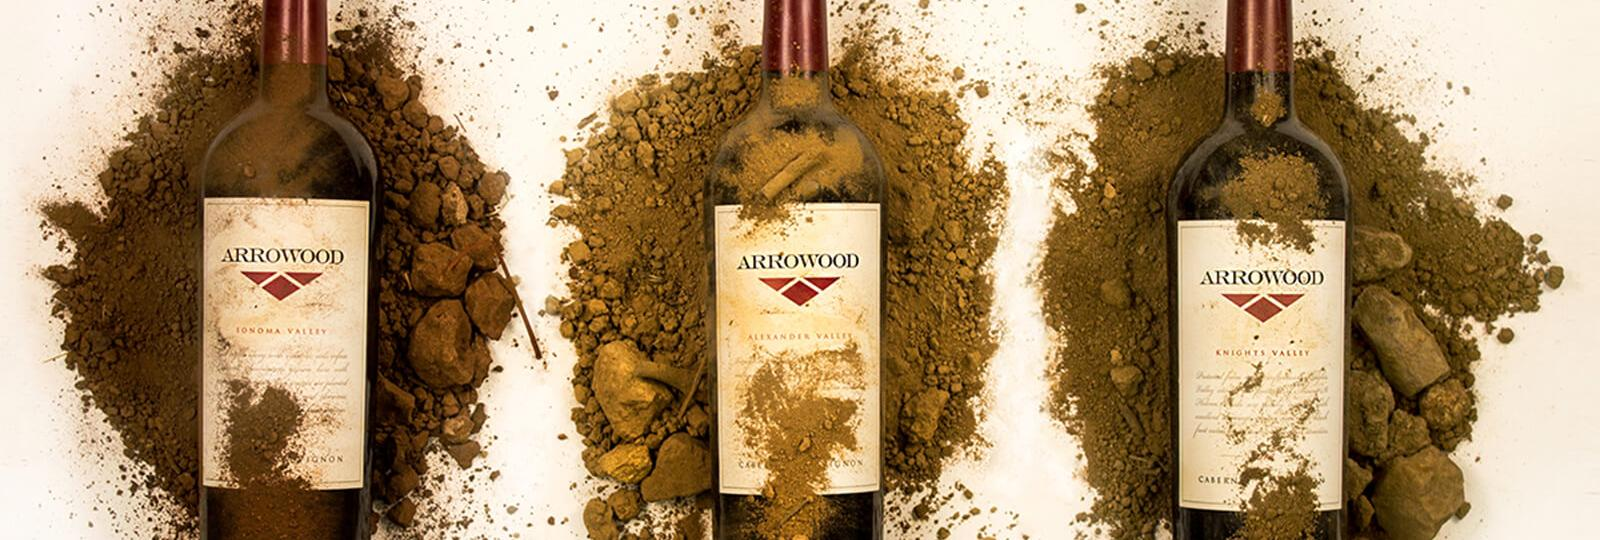 Arrowood bottles of wine with different types of dirt covering them